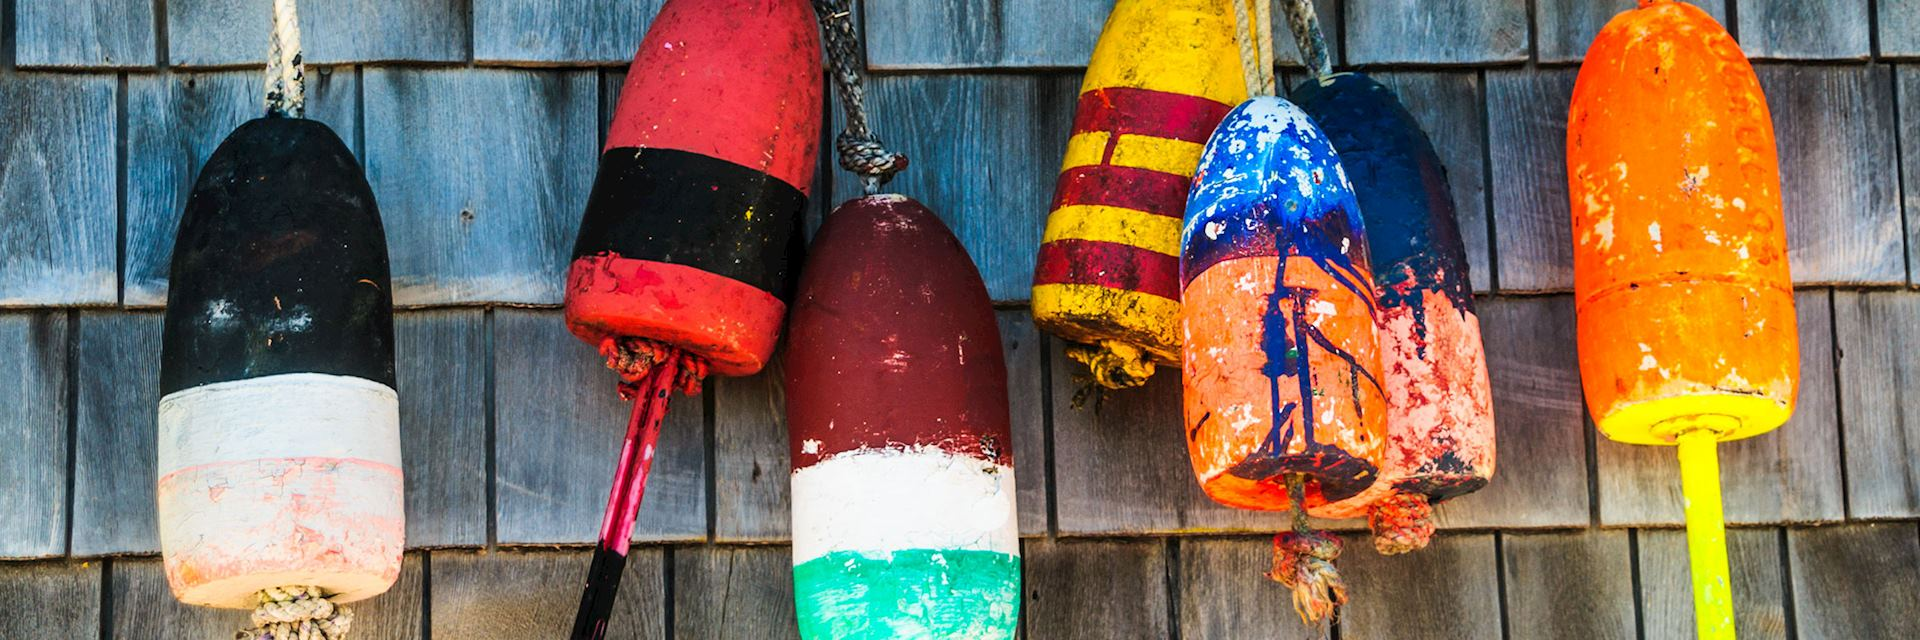 Lobster buoys, Maine, New England